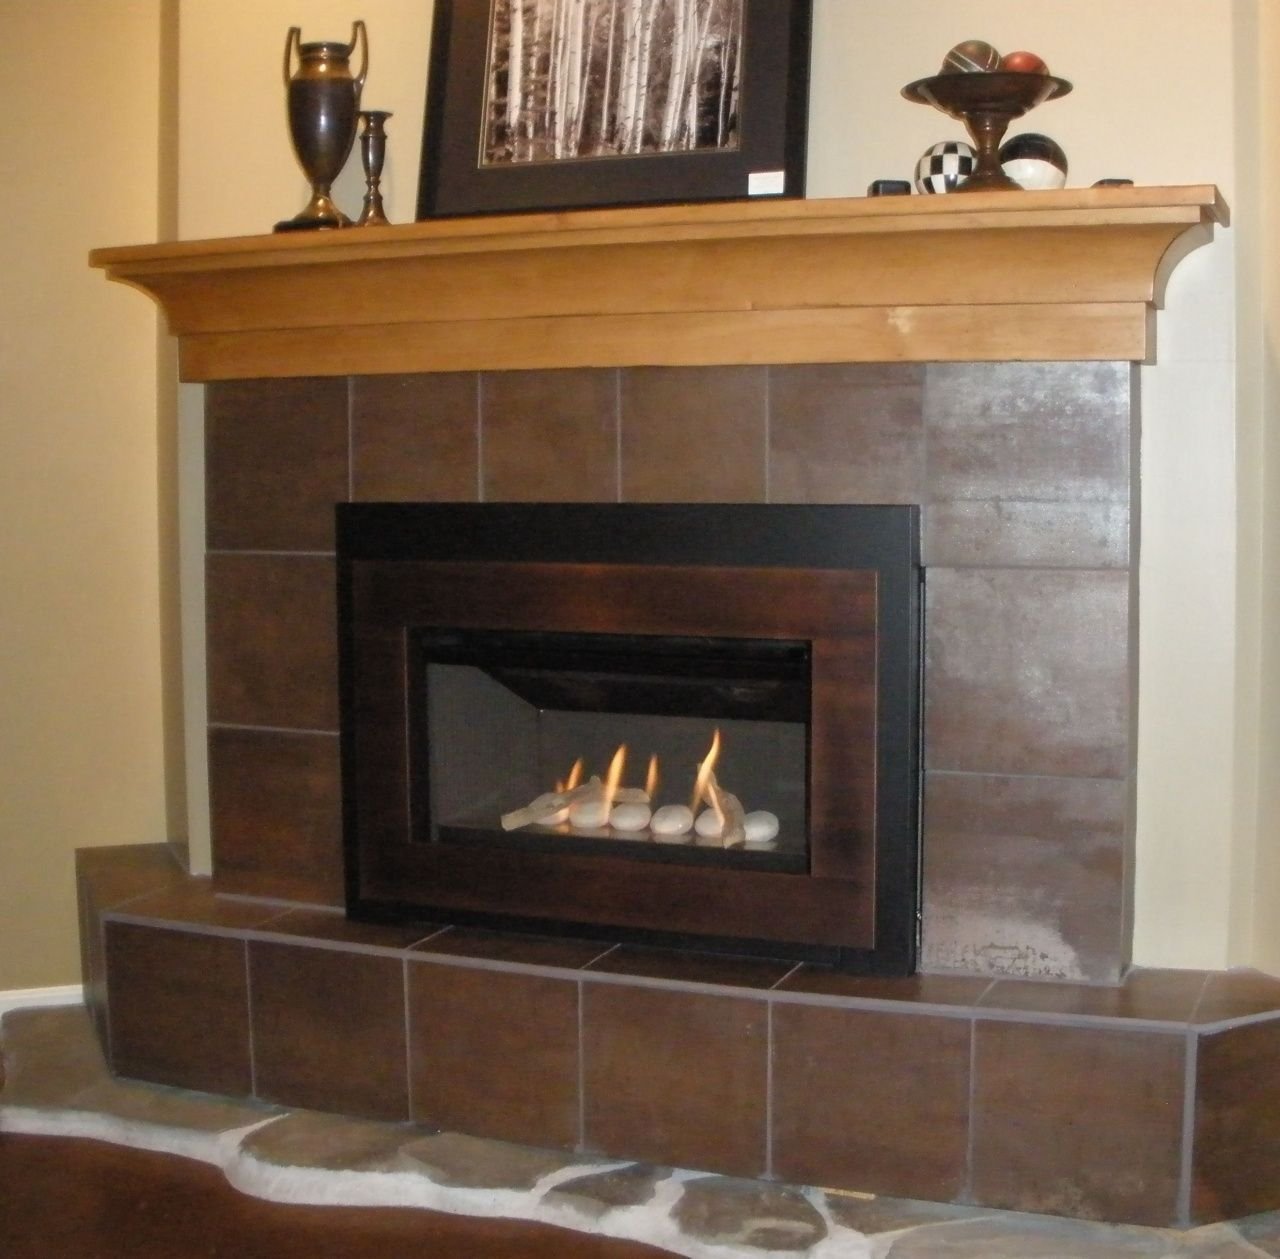 How Much Gas Does A Gas Fireplace Use Fireplace Design In 2020